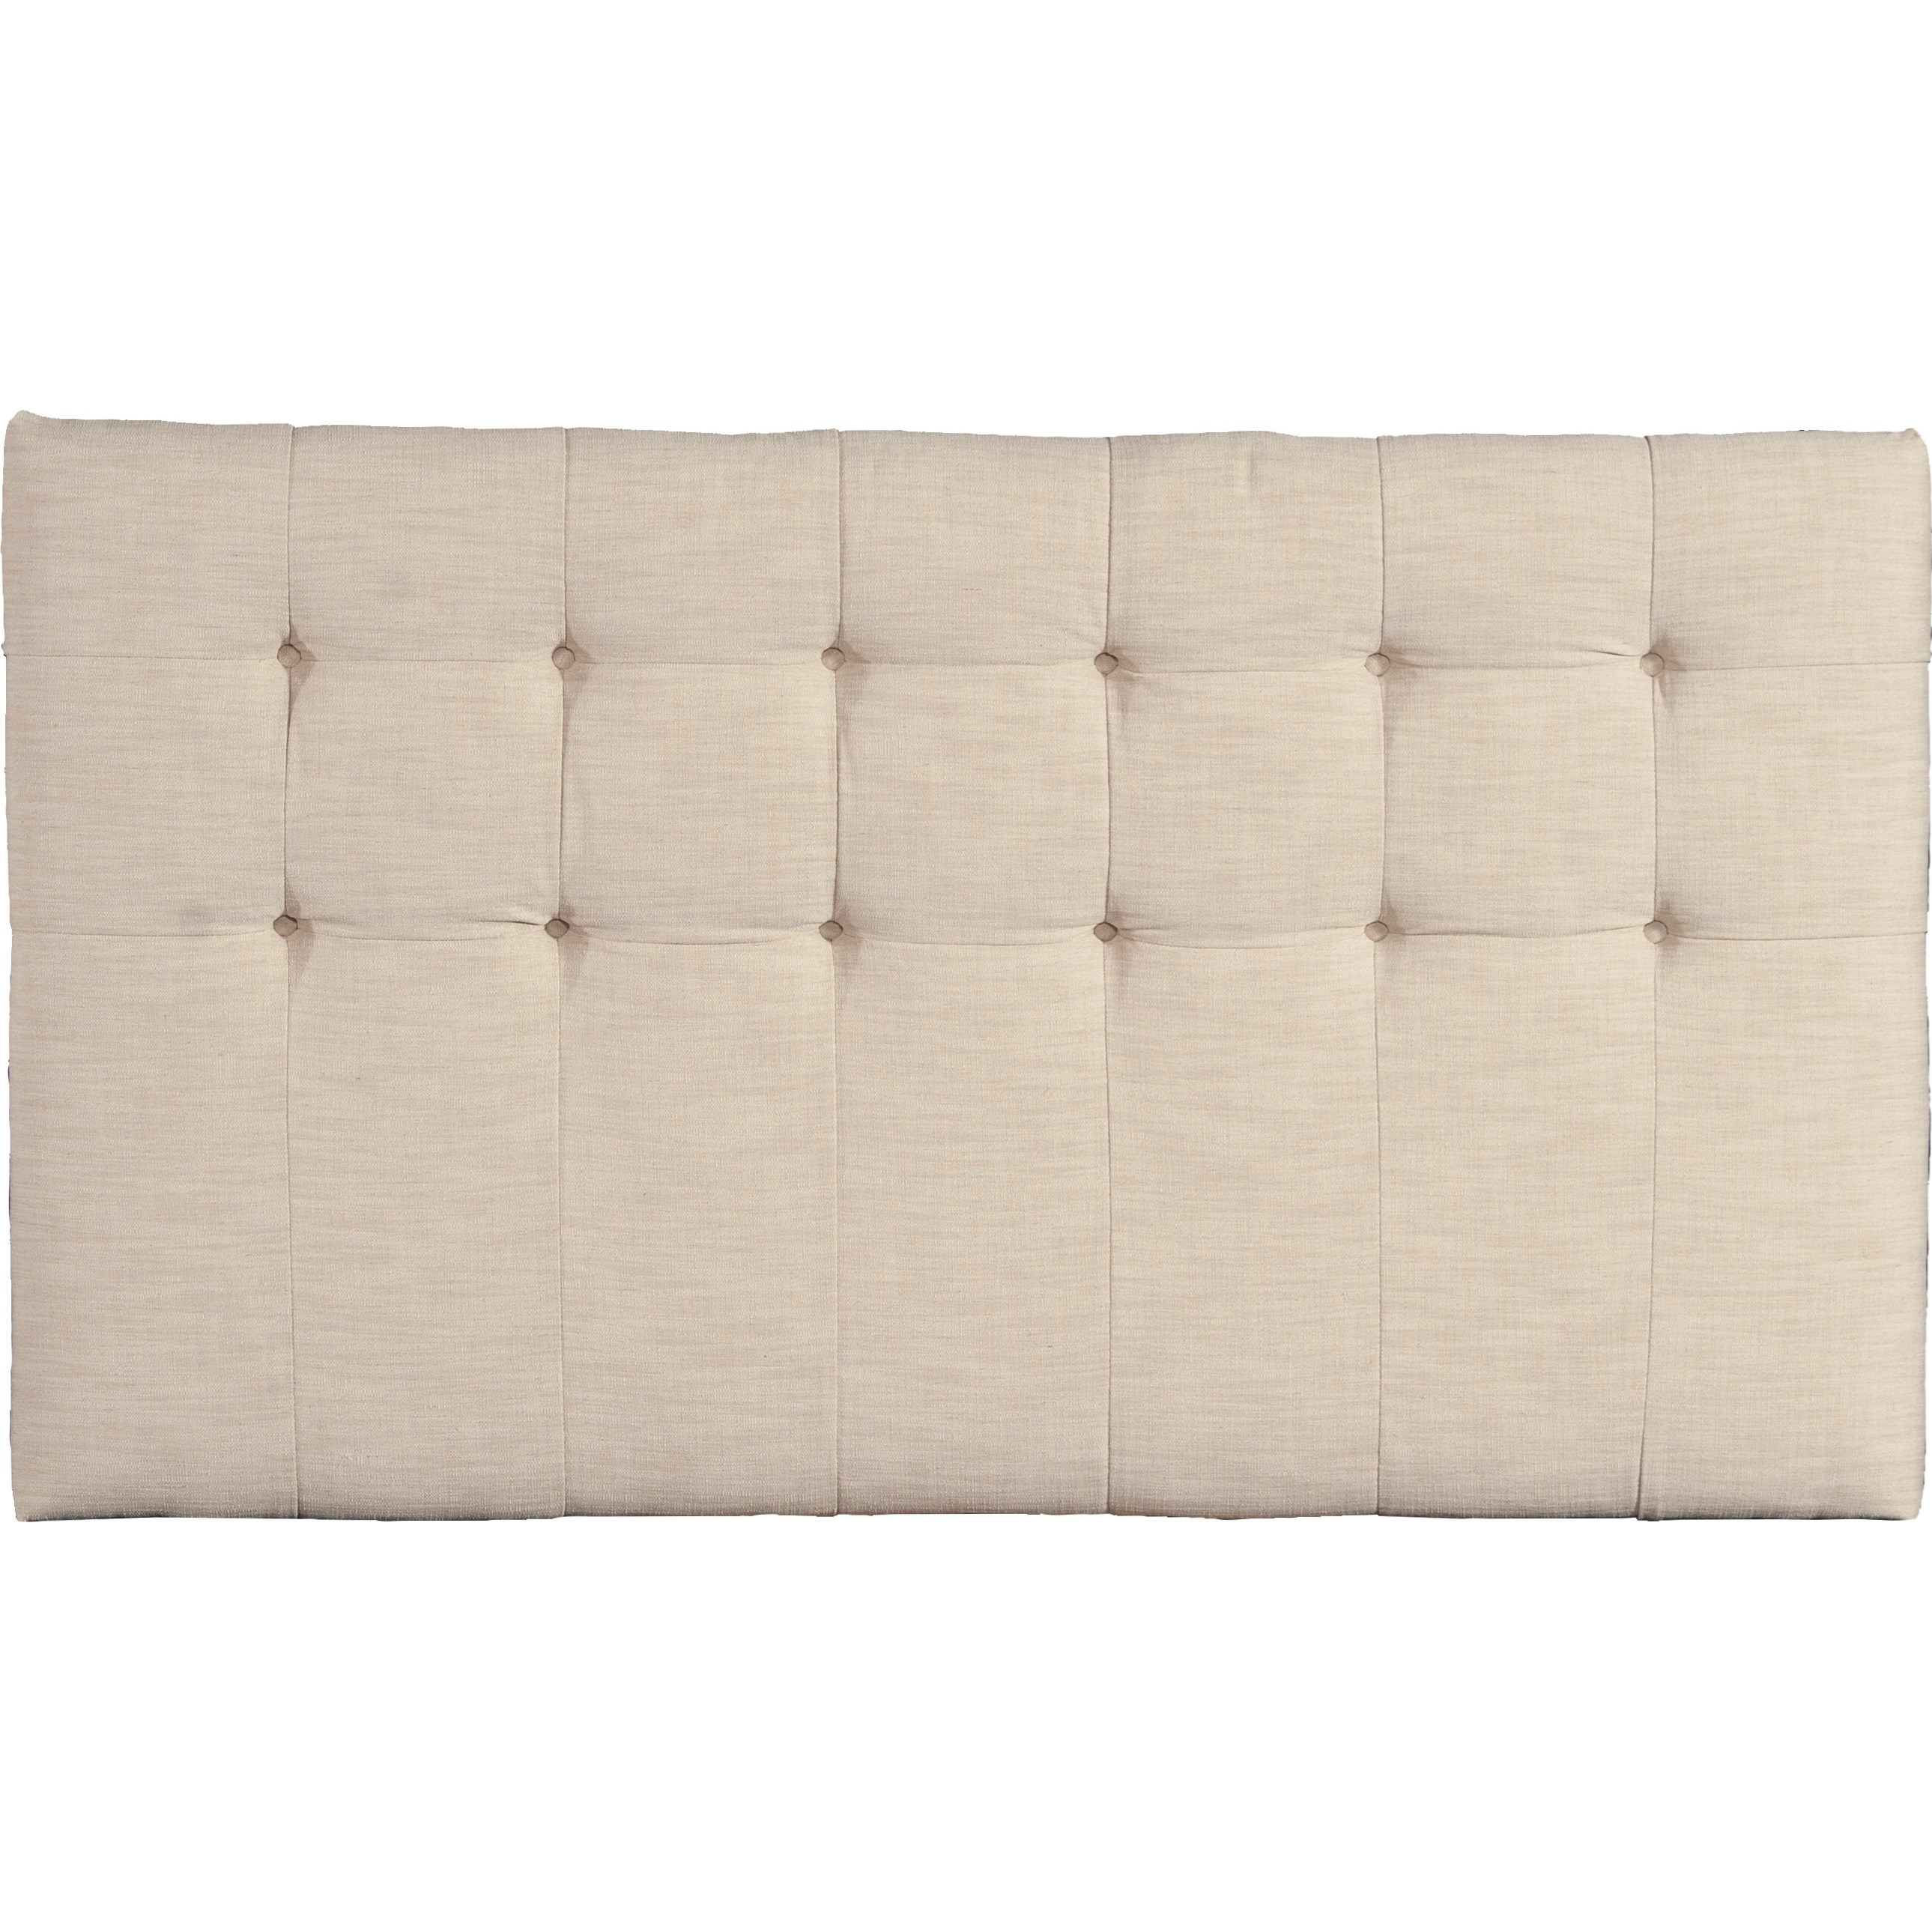 7020 Queen Headboard by Mayo at Wilcox Furniture